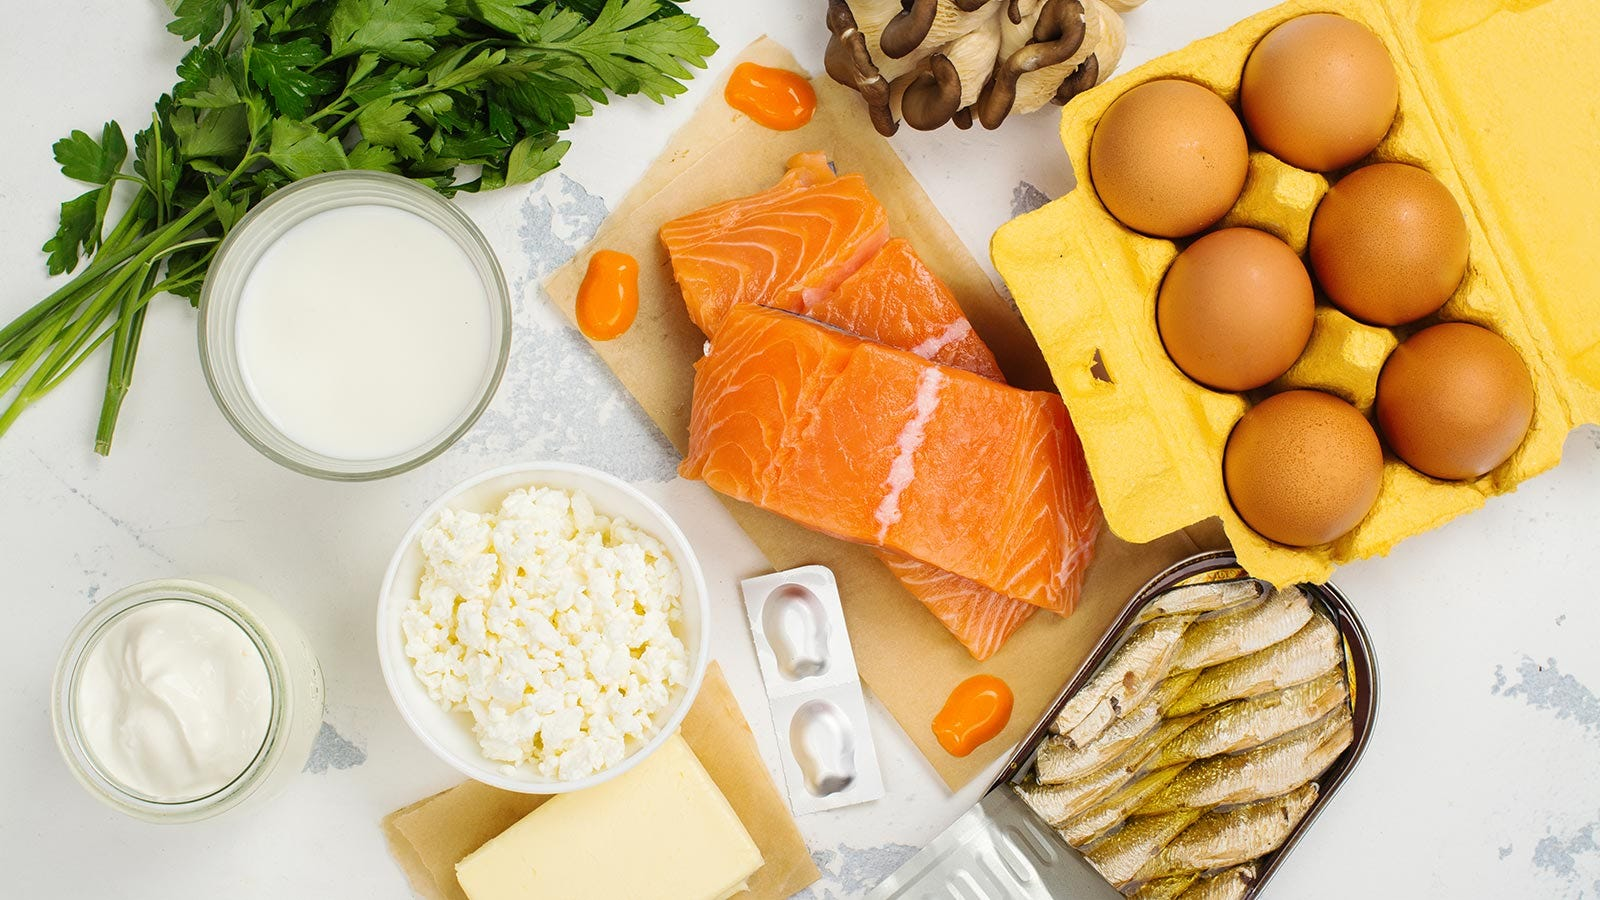 Foods that naturally contain vitamin D.